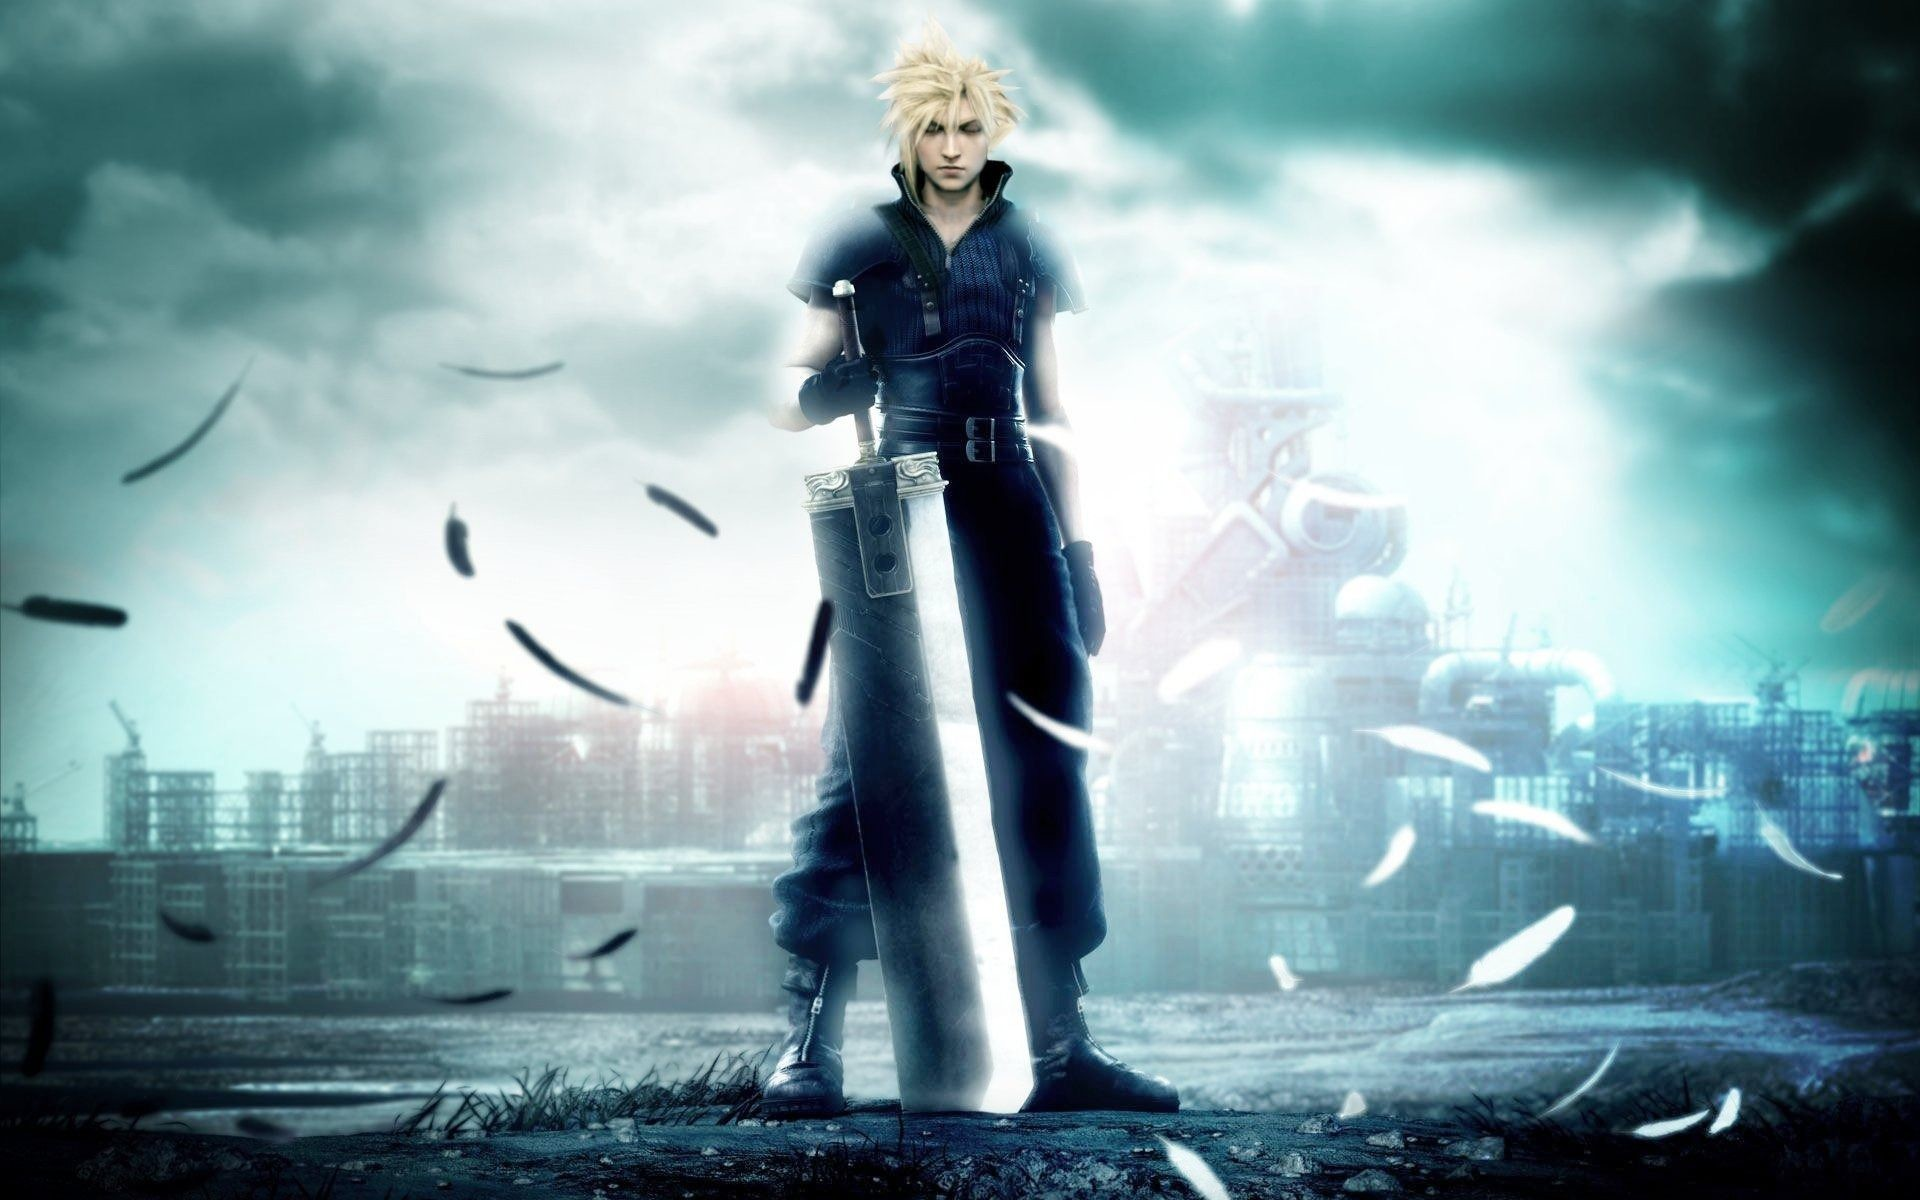 1920x1200 Download Final Fantasy Vii Anime Wallpaper 1600x1200 | Full HD